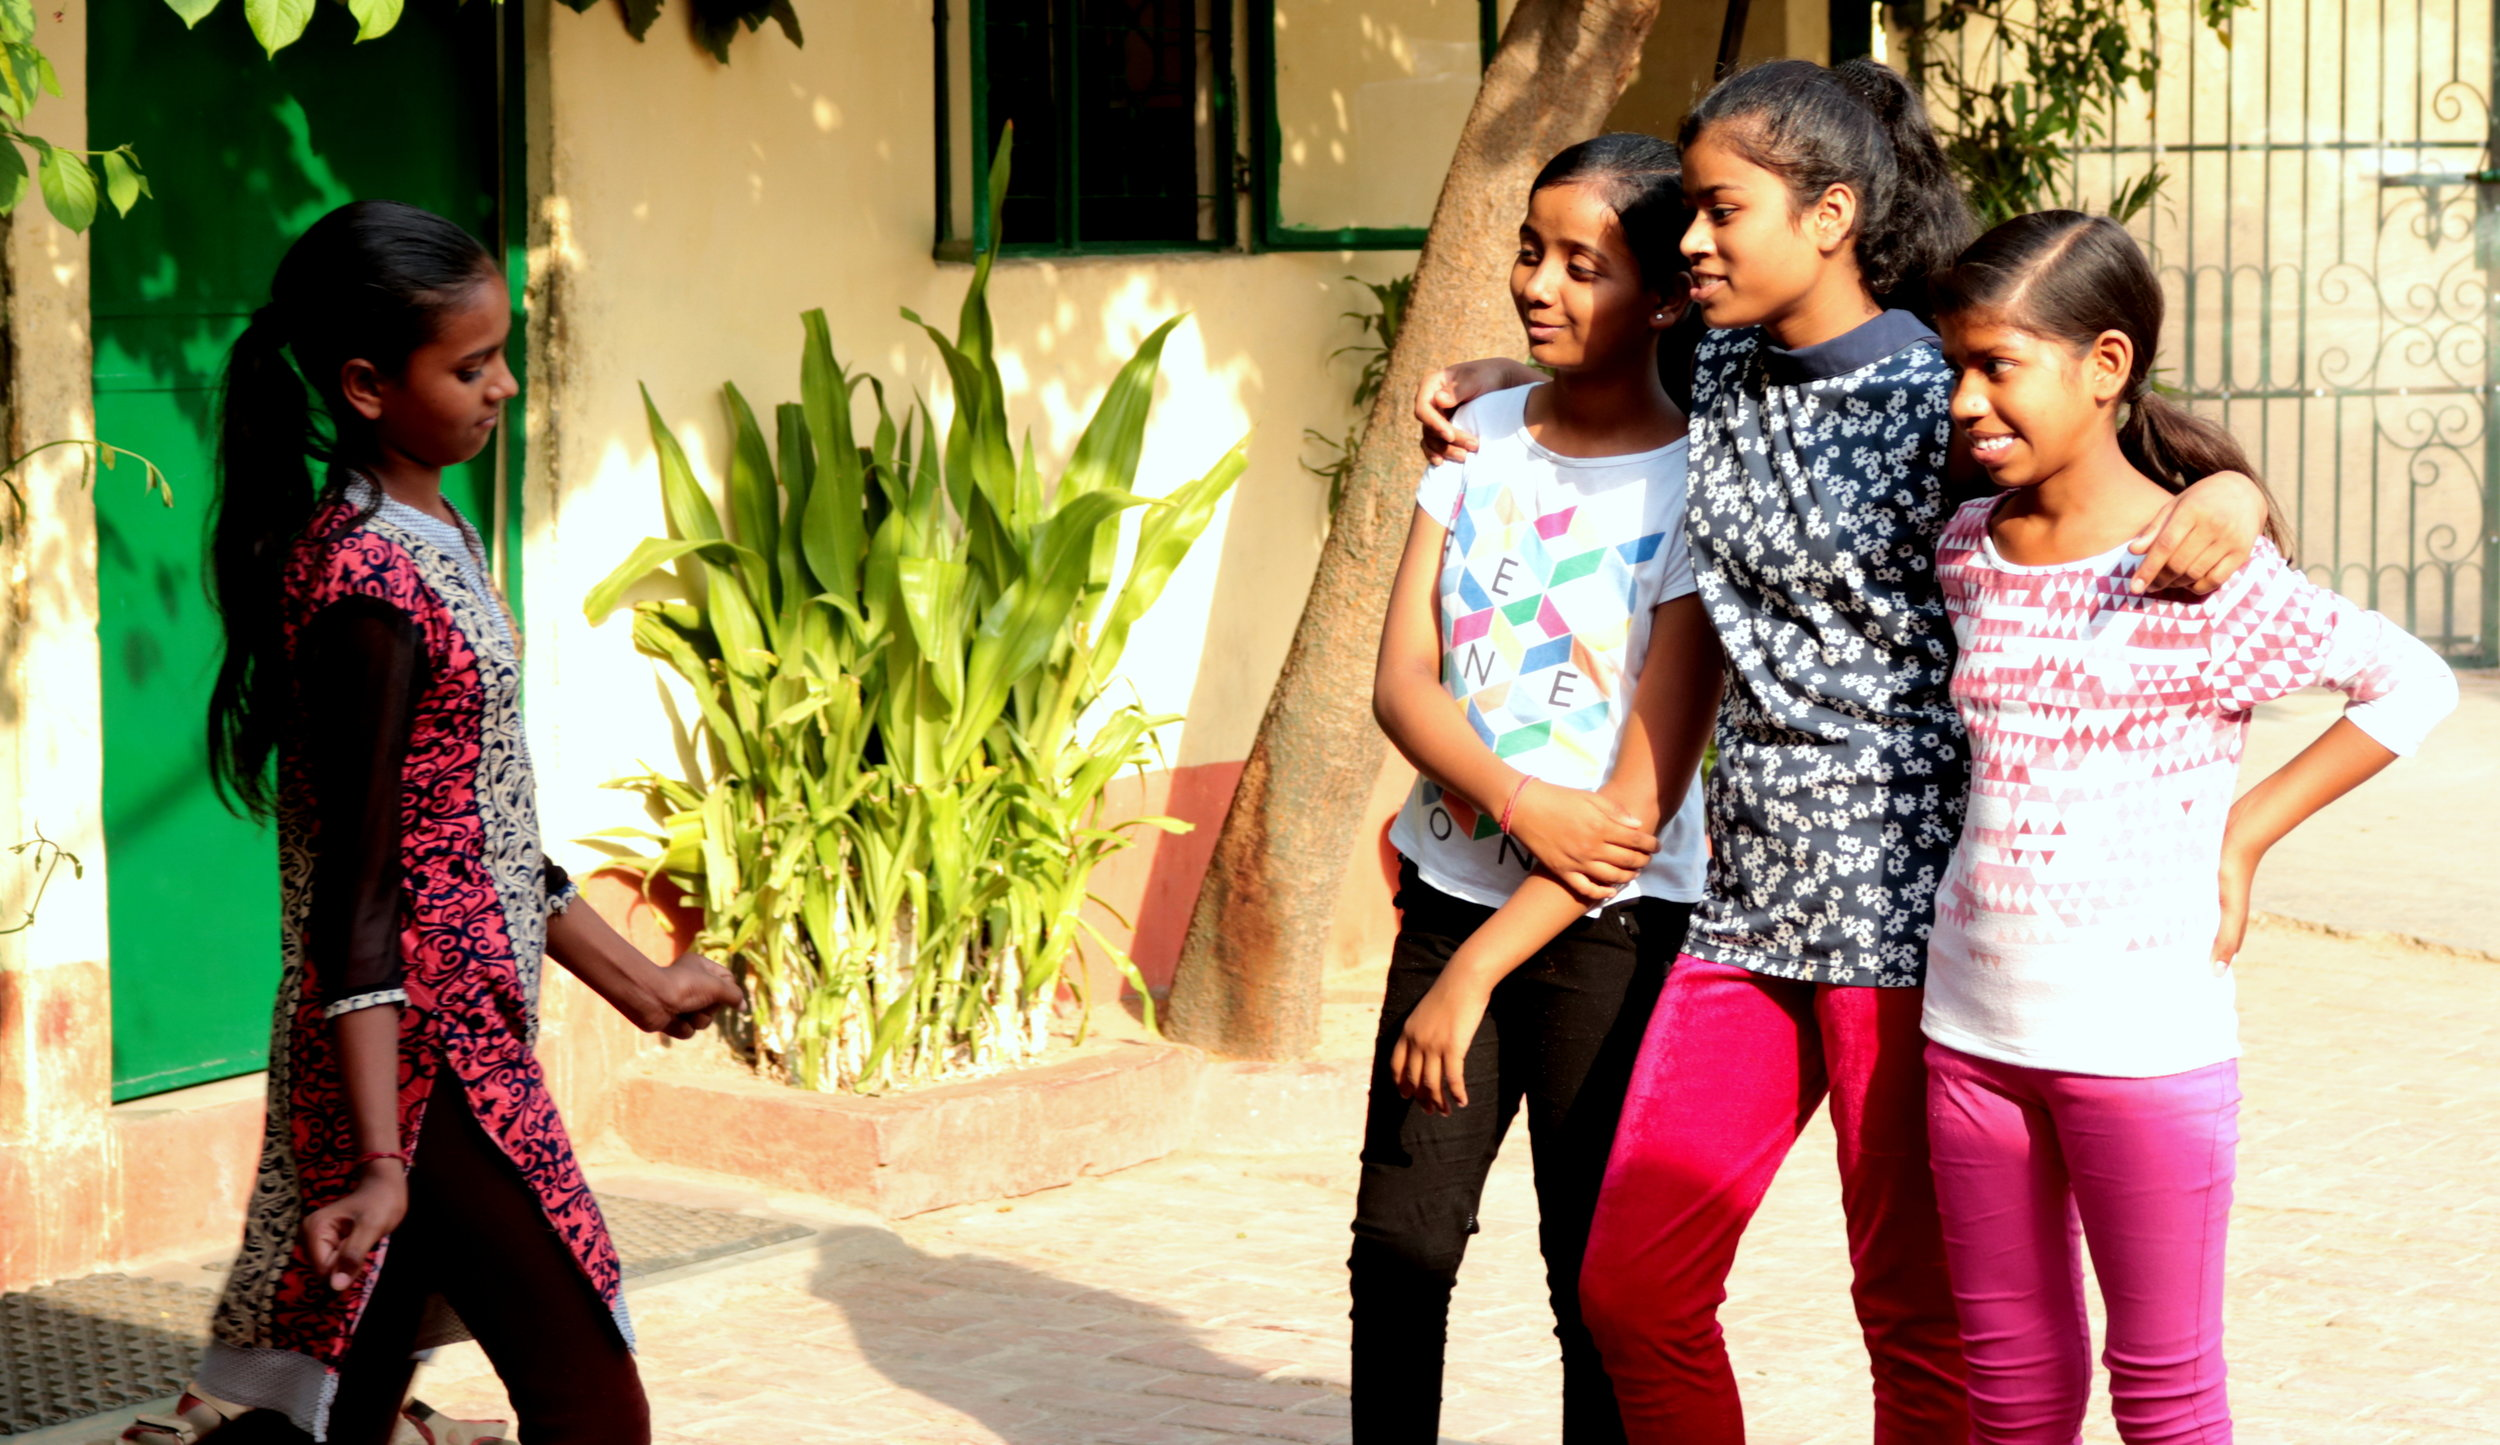 Girls leading the role-play